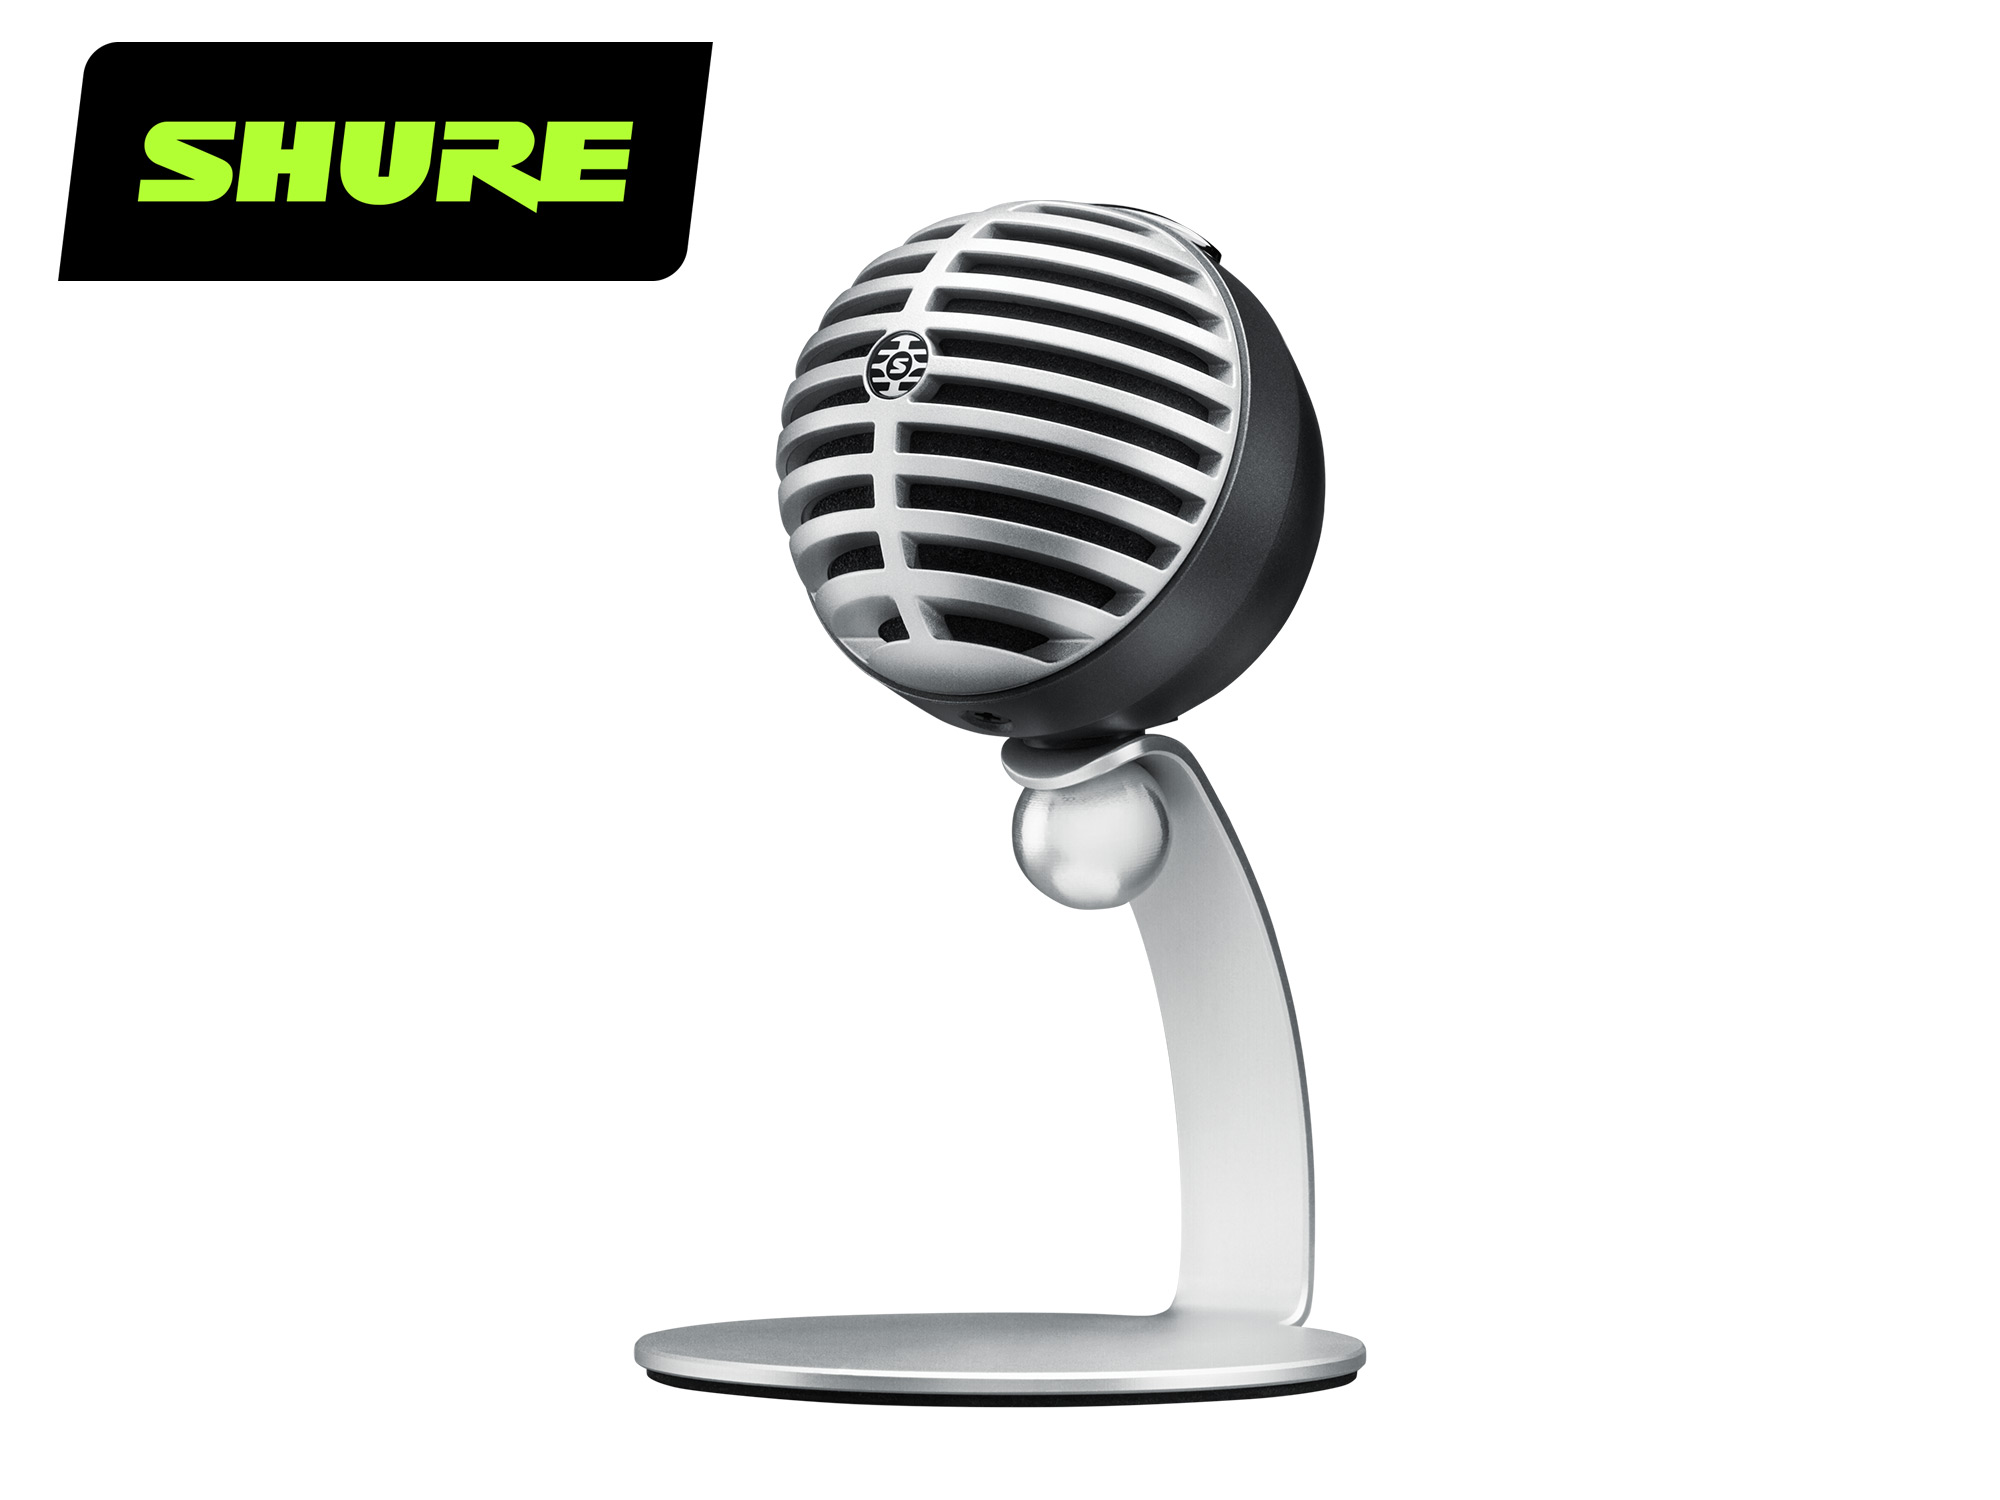 Shure MV5 Home Studio Digital Condenser Microphone